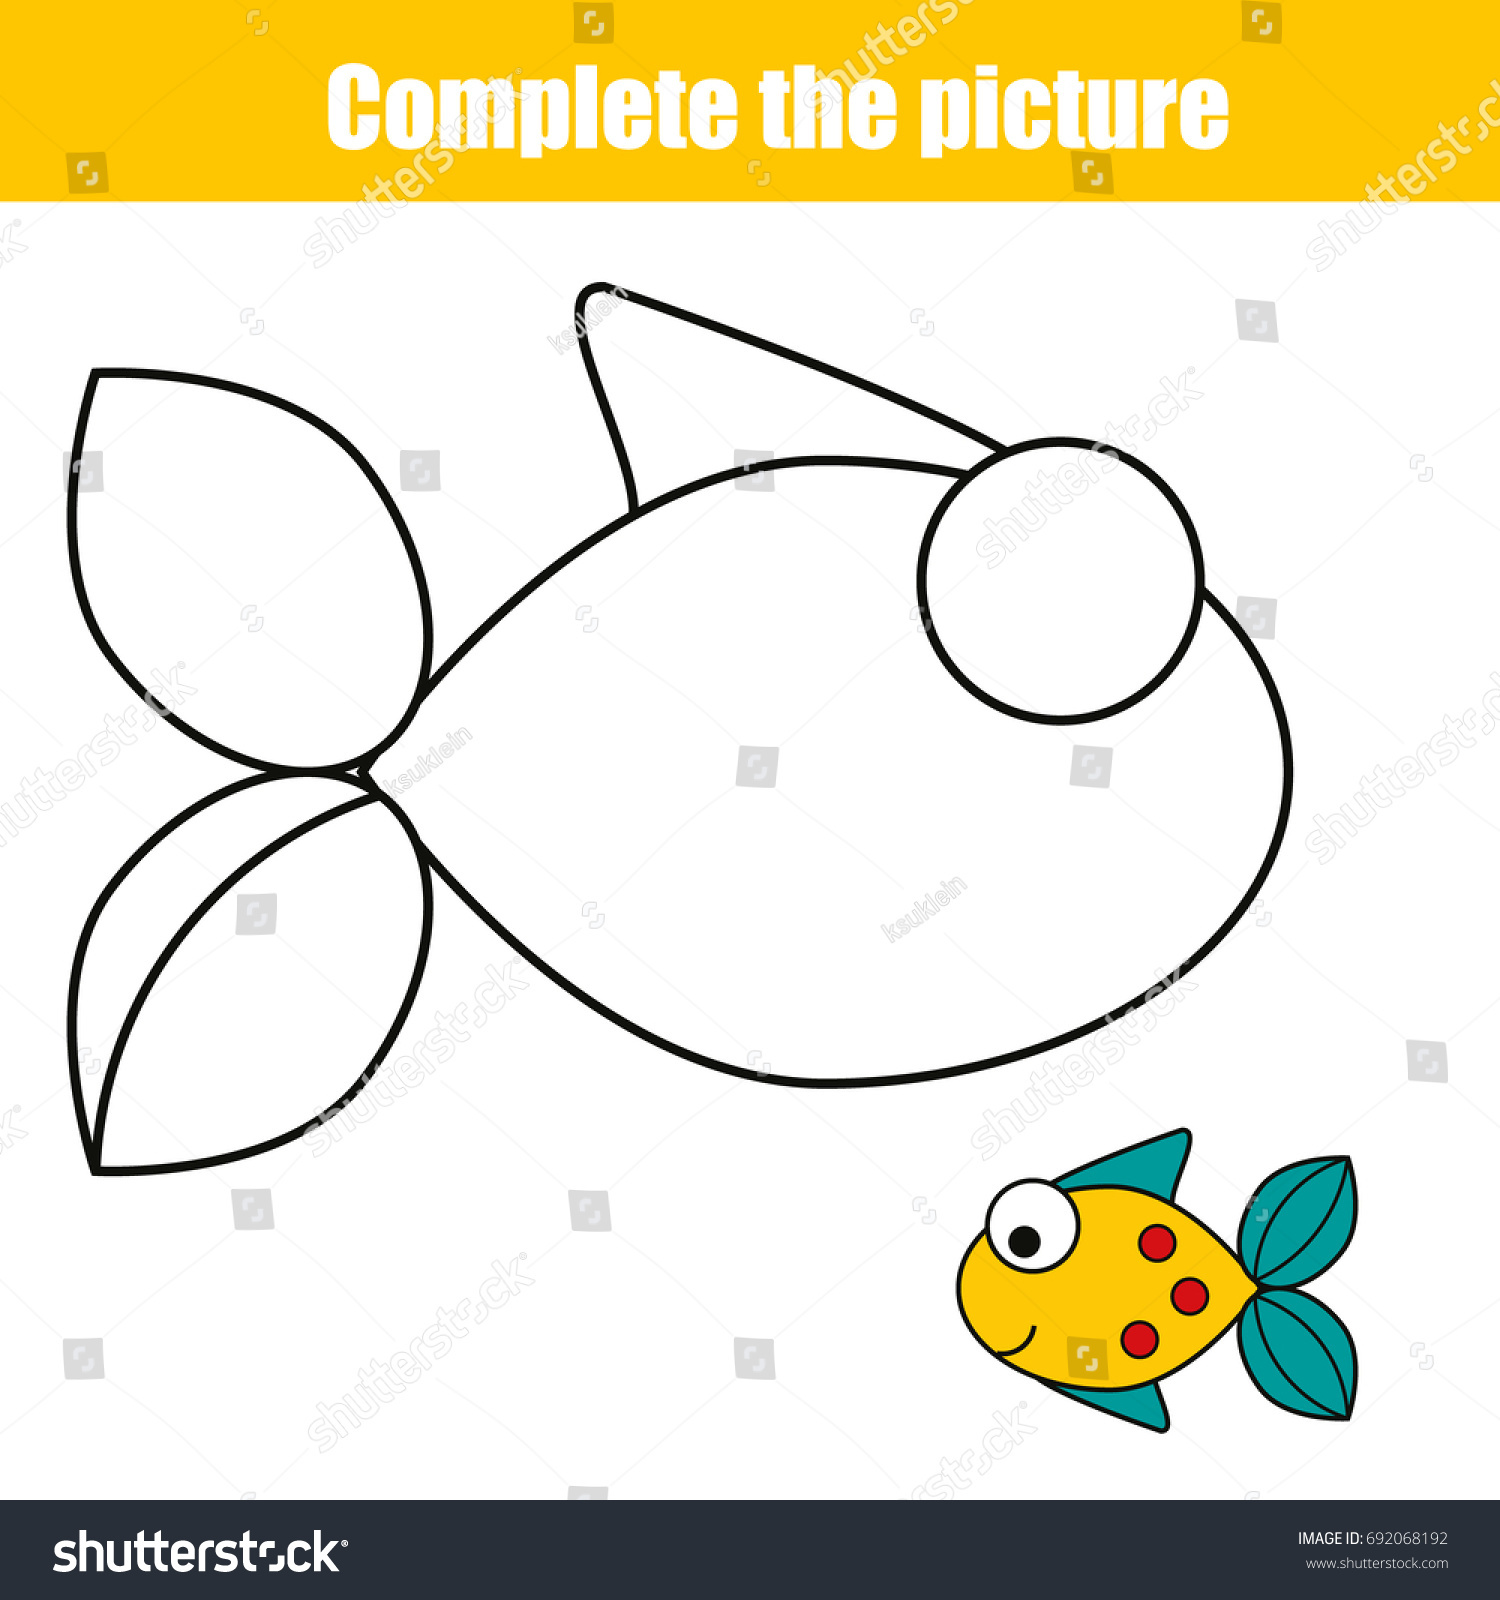 Complete The Picture Children Educational Game Coloring Page Kids Activity Sheet With Fish